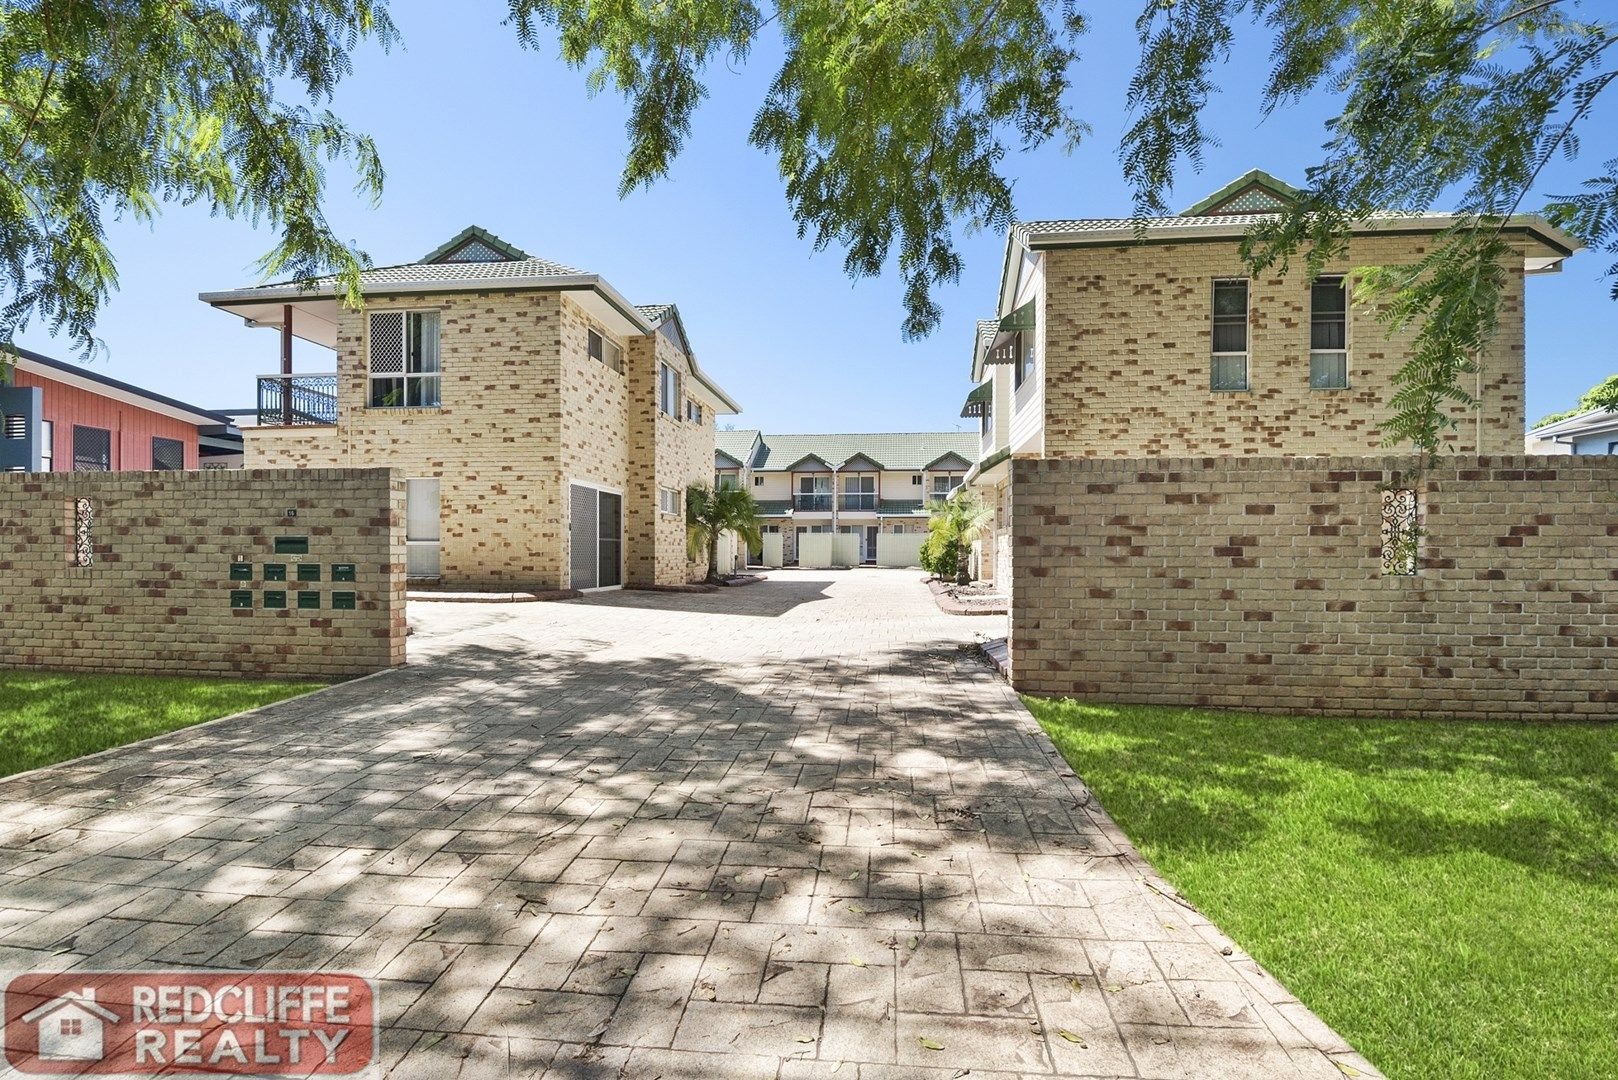 Unit 2 16 Grant Street, Redcliffe QLD 4020, Image 0